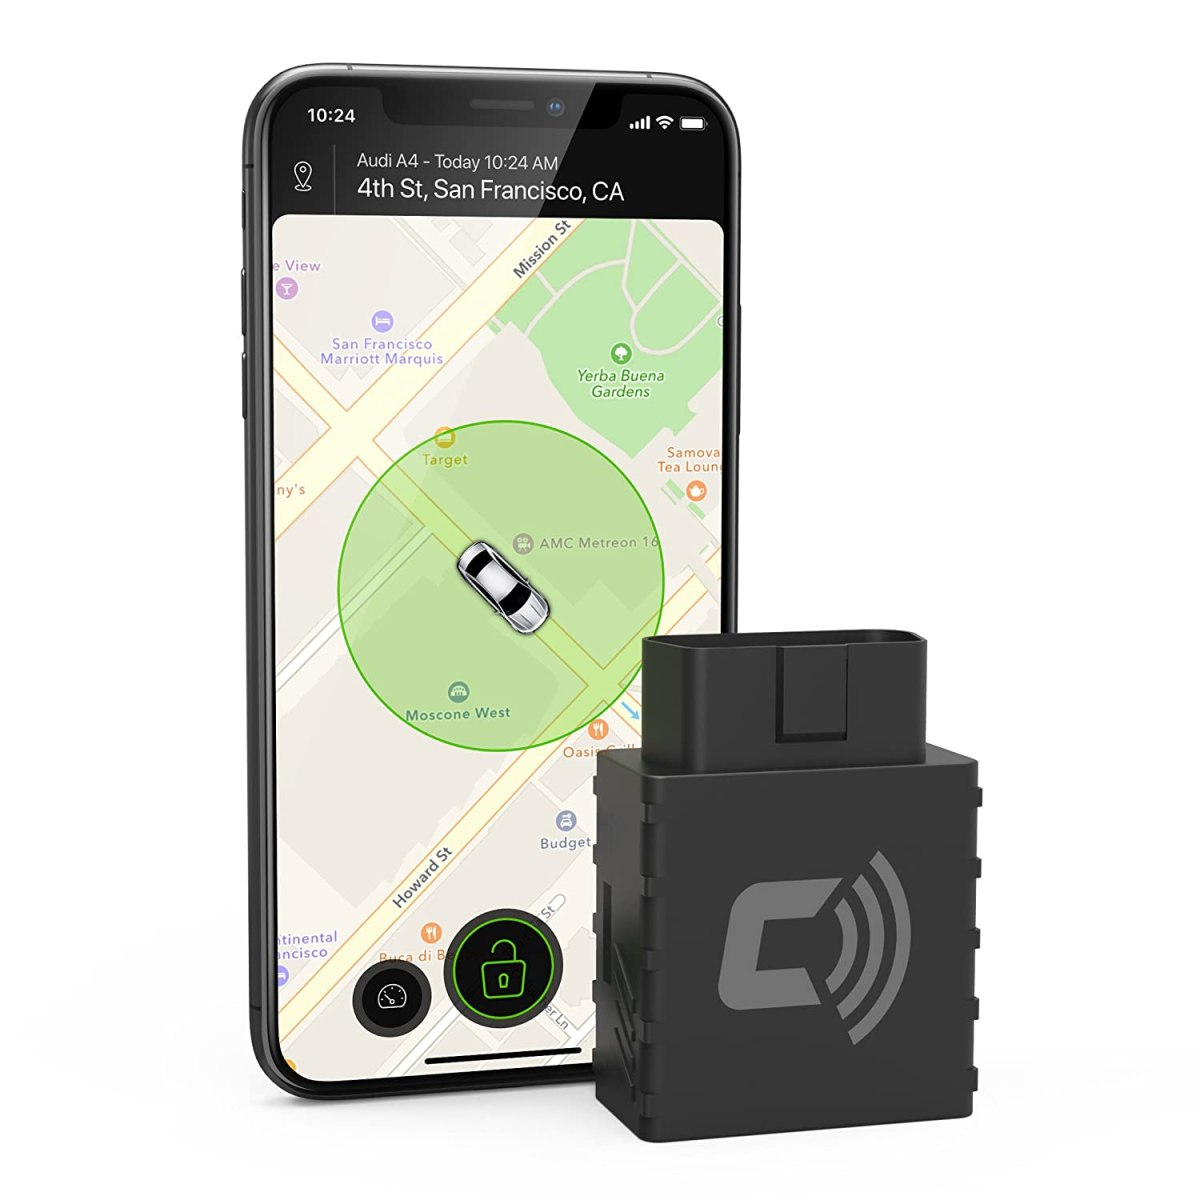 Best Car Trackers Reviews CarLock - 2nd Gen Advanced Real-Time 3G Car Tracker & Alert System